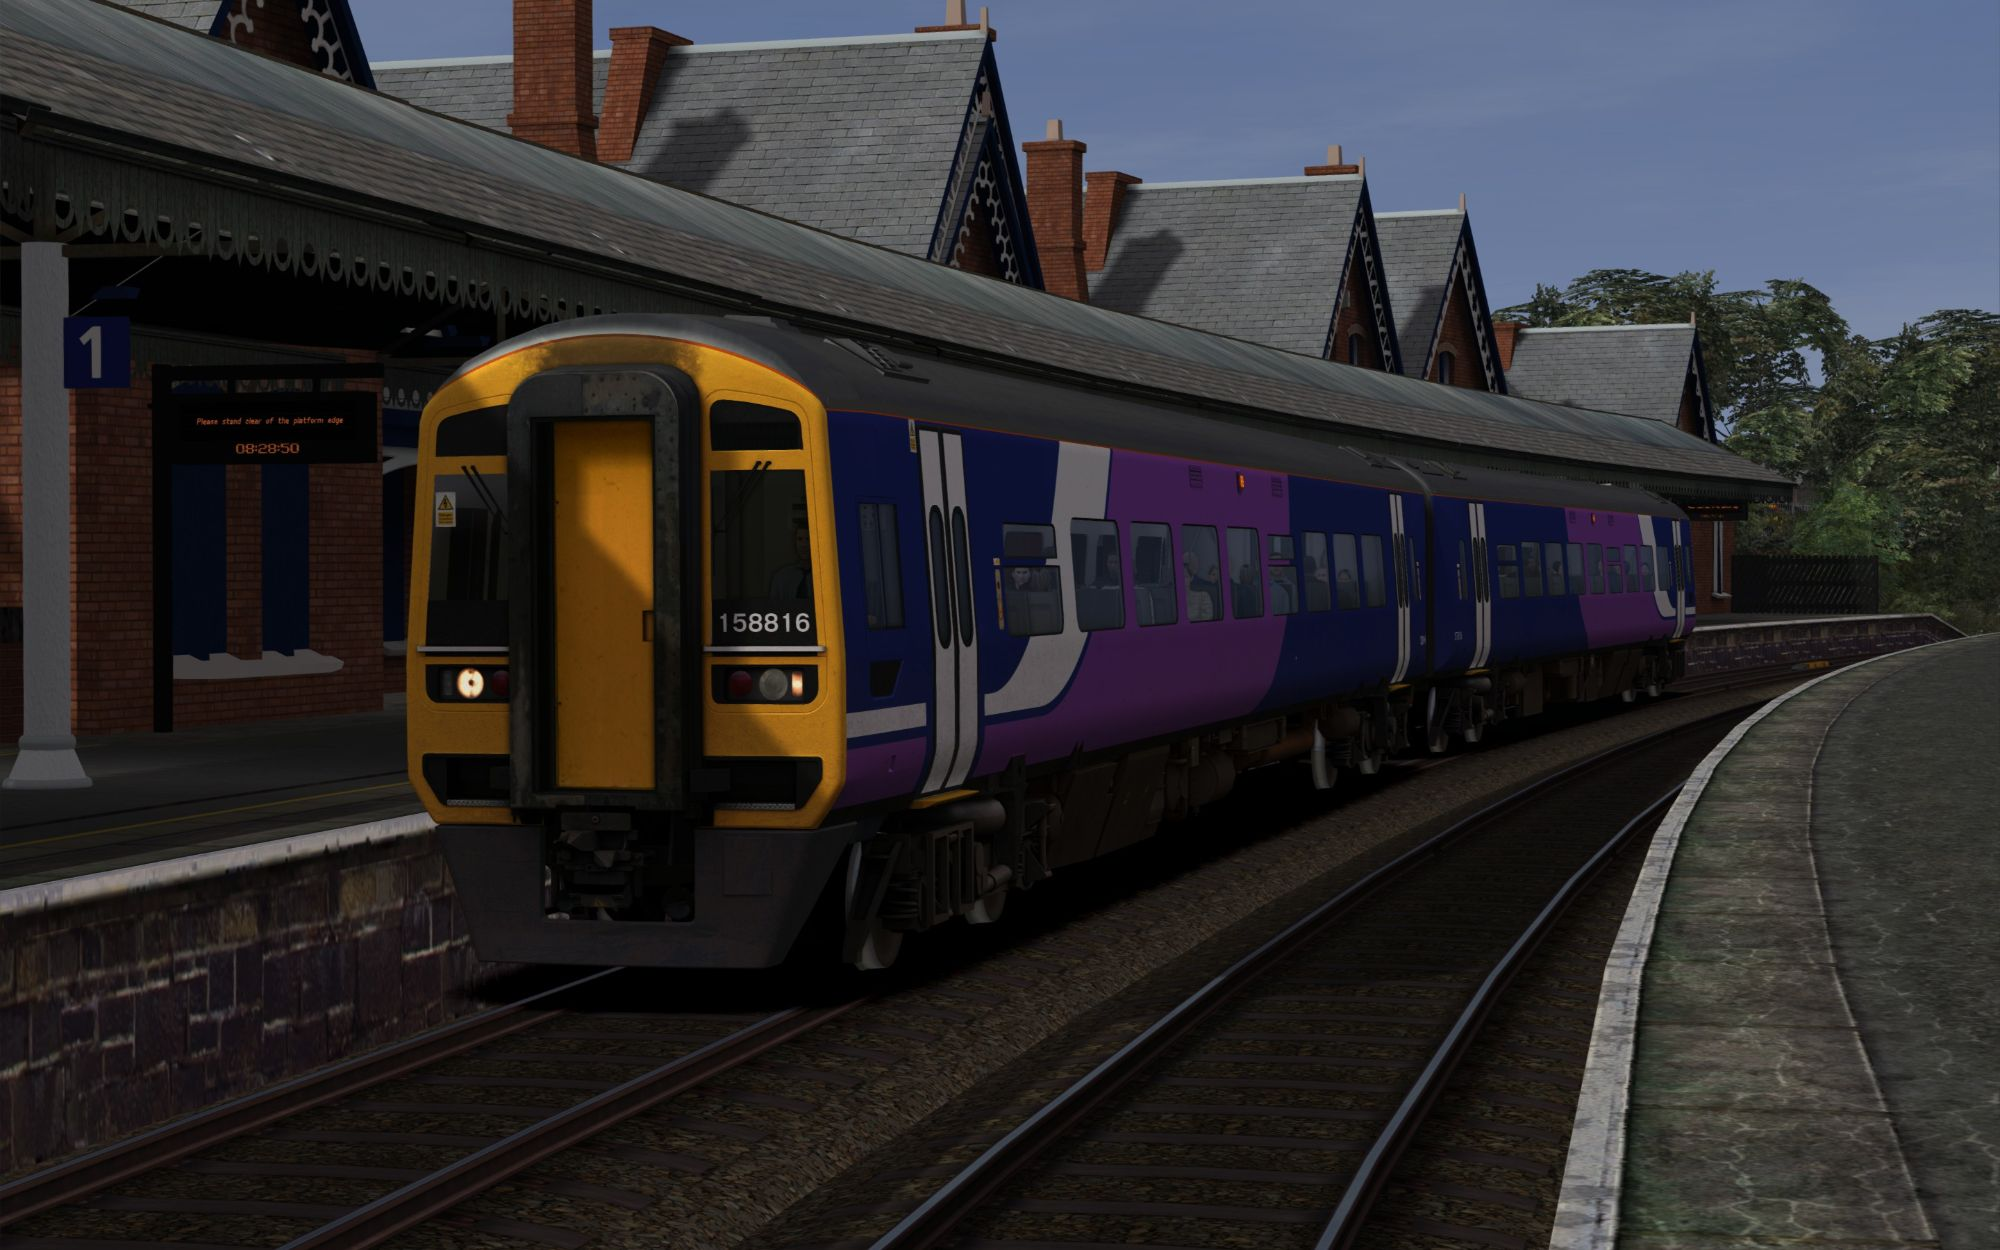 Image showing screenshot of the 2N08 - 0544 Carlisle to Nunthorpe scenario